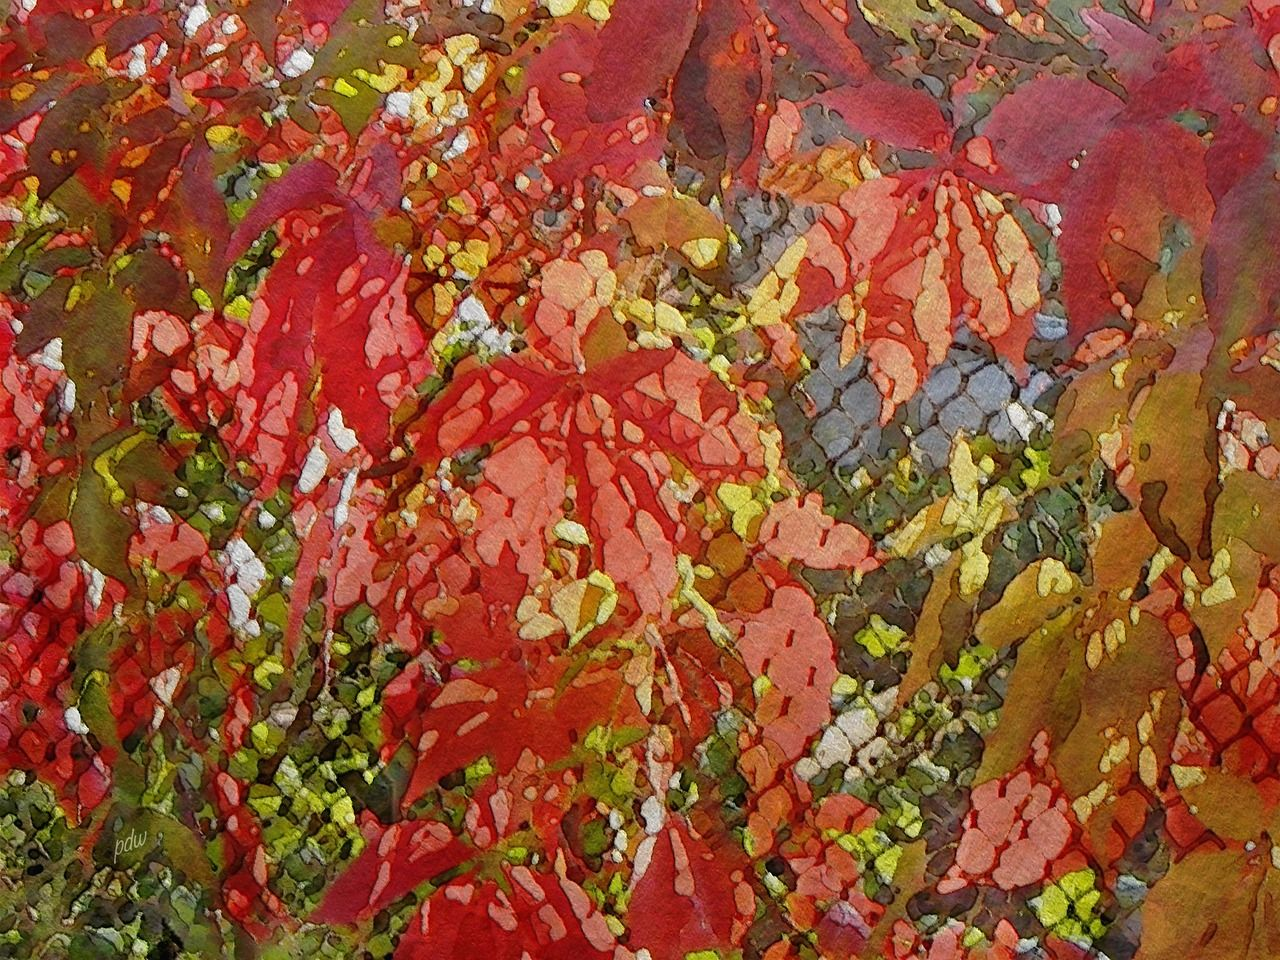 Light Play on Red Leaves on a Wire Fence 2 | Original Art ...